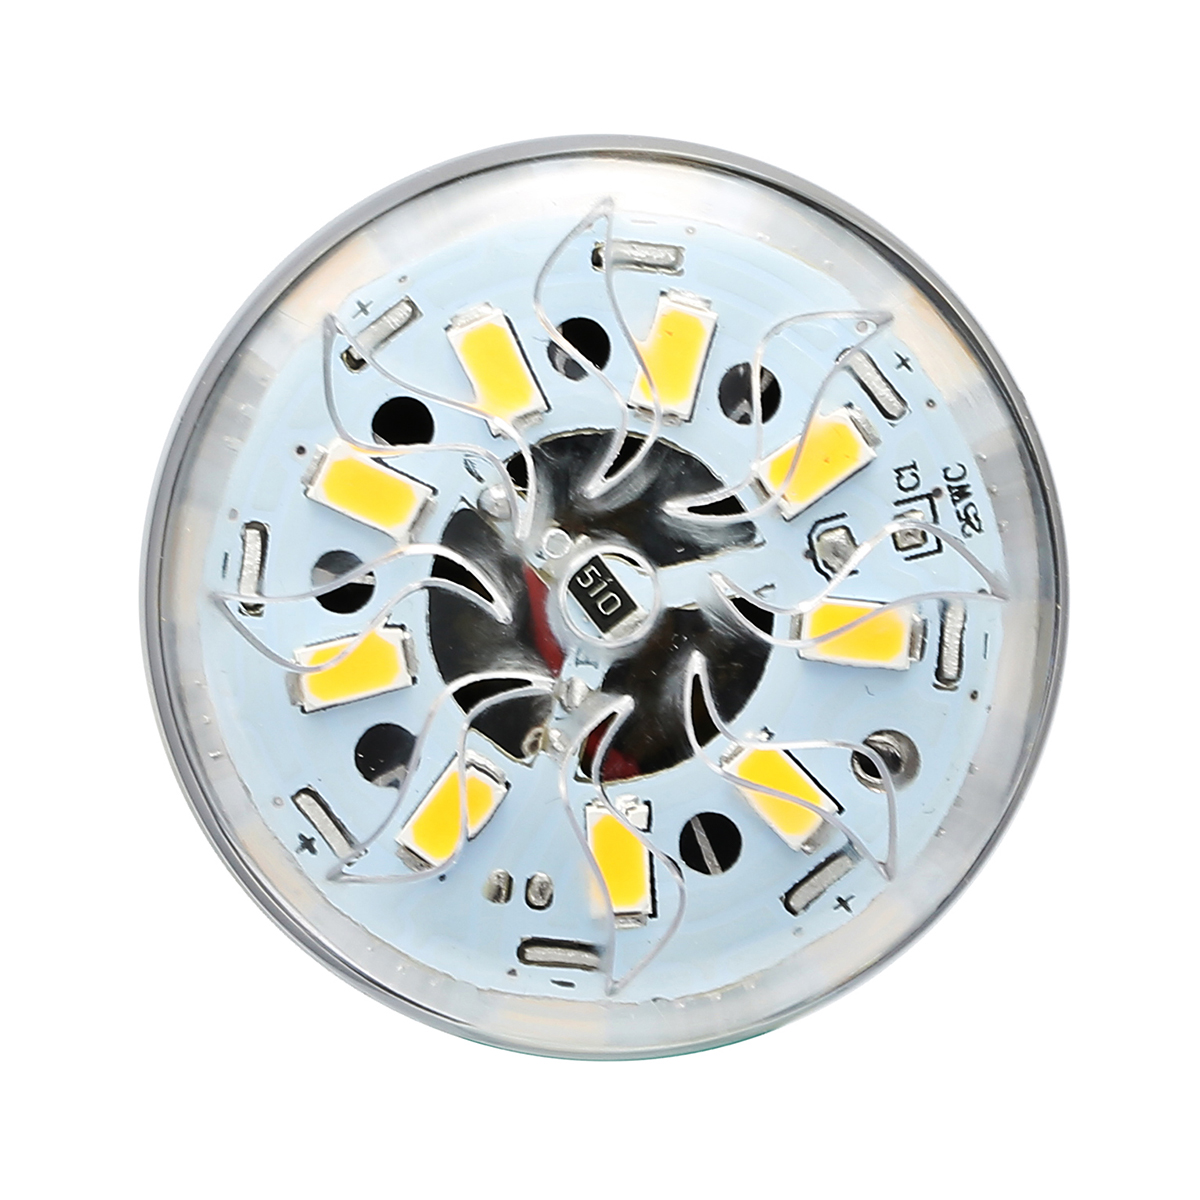 ARILUX® E27 25W 35W 45W SM5730 Fan Cooling Constant Current LED Corn Light Bulb AC85-265V